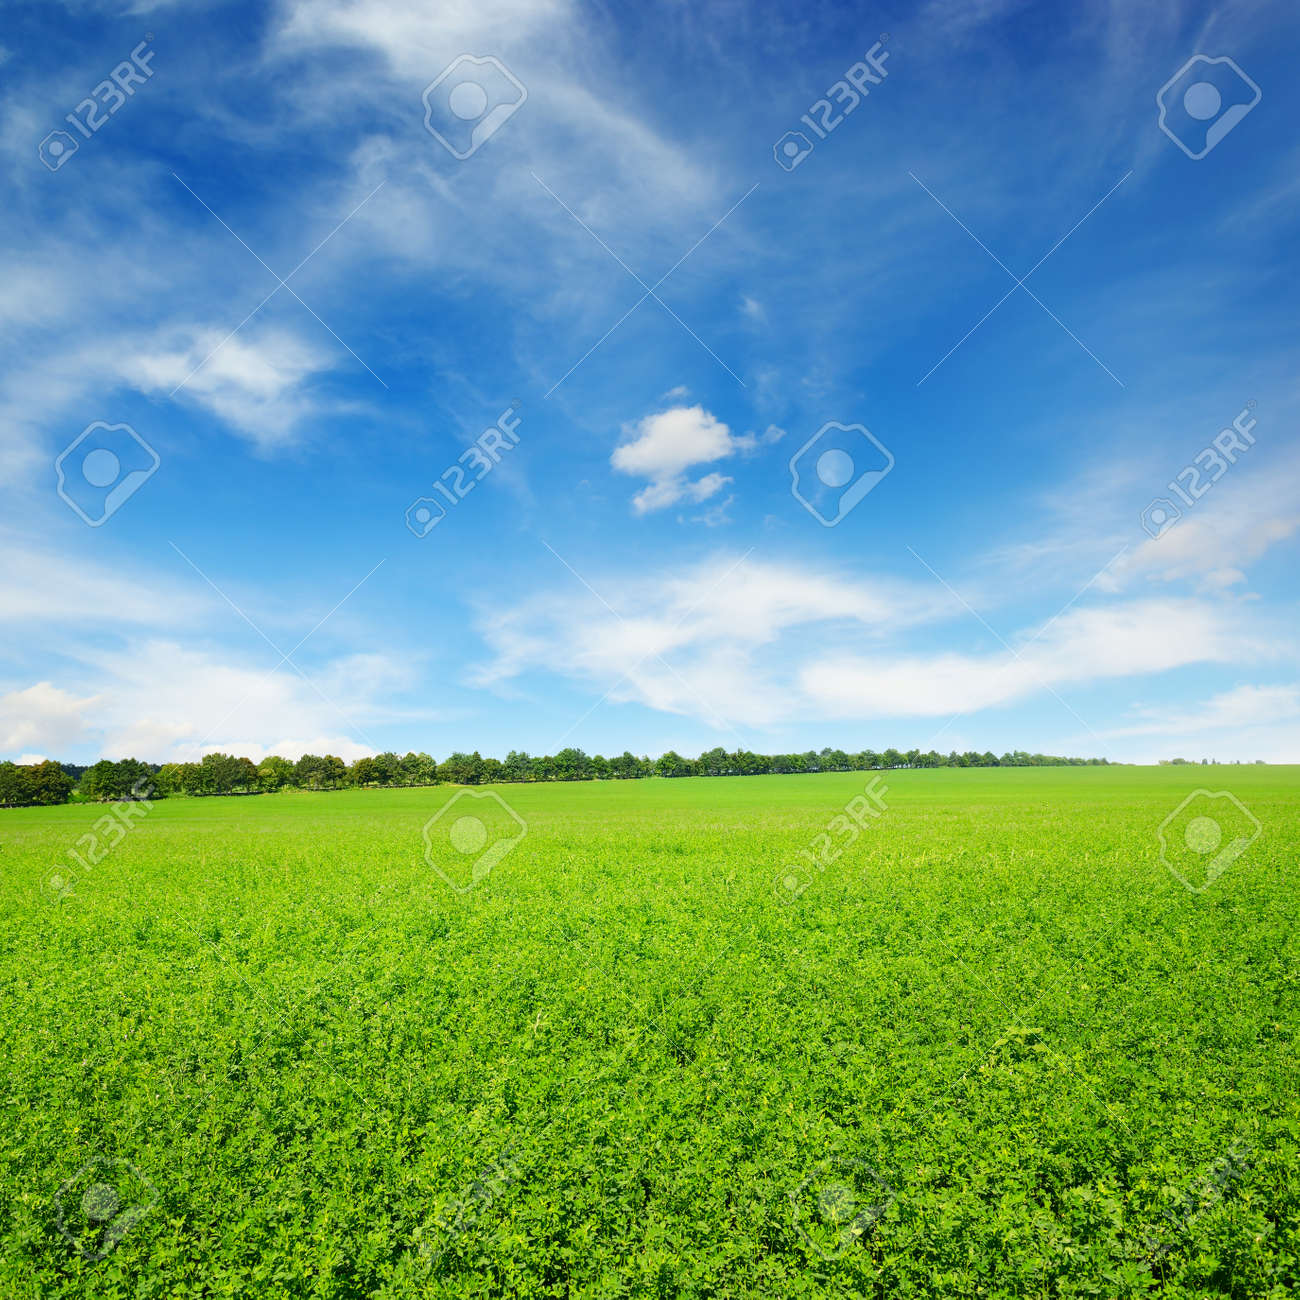 Fresh spring clover field and blue sky - 130393968